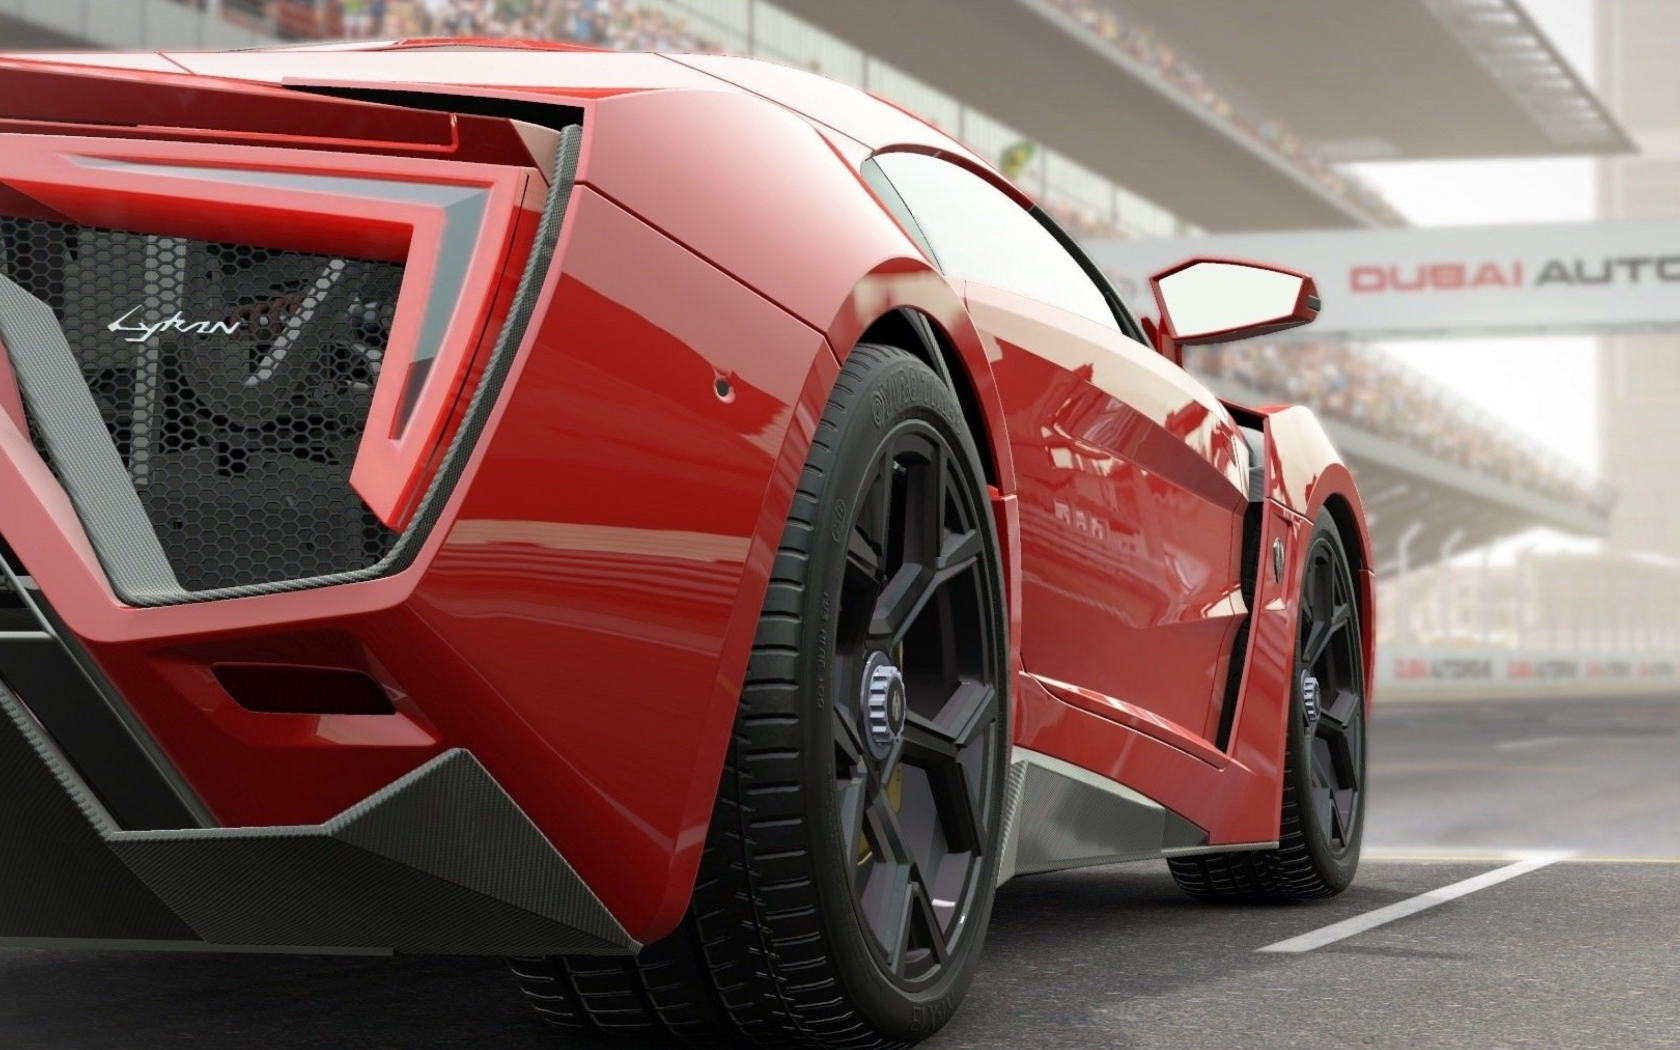 Free Download Project Cars Game 4k Ultra Hd 2019 Cars 2020 Cars 4k 4k 5k 4k 4096x2160 For Your Desktop Mobile Tablet Explore 43 2019 2020 Video Games Wallpapers 2019 2020